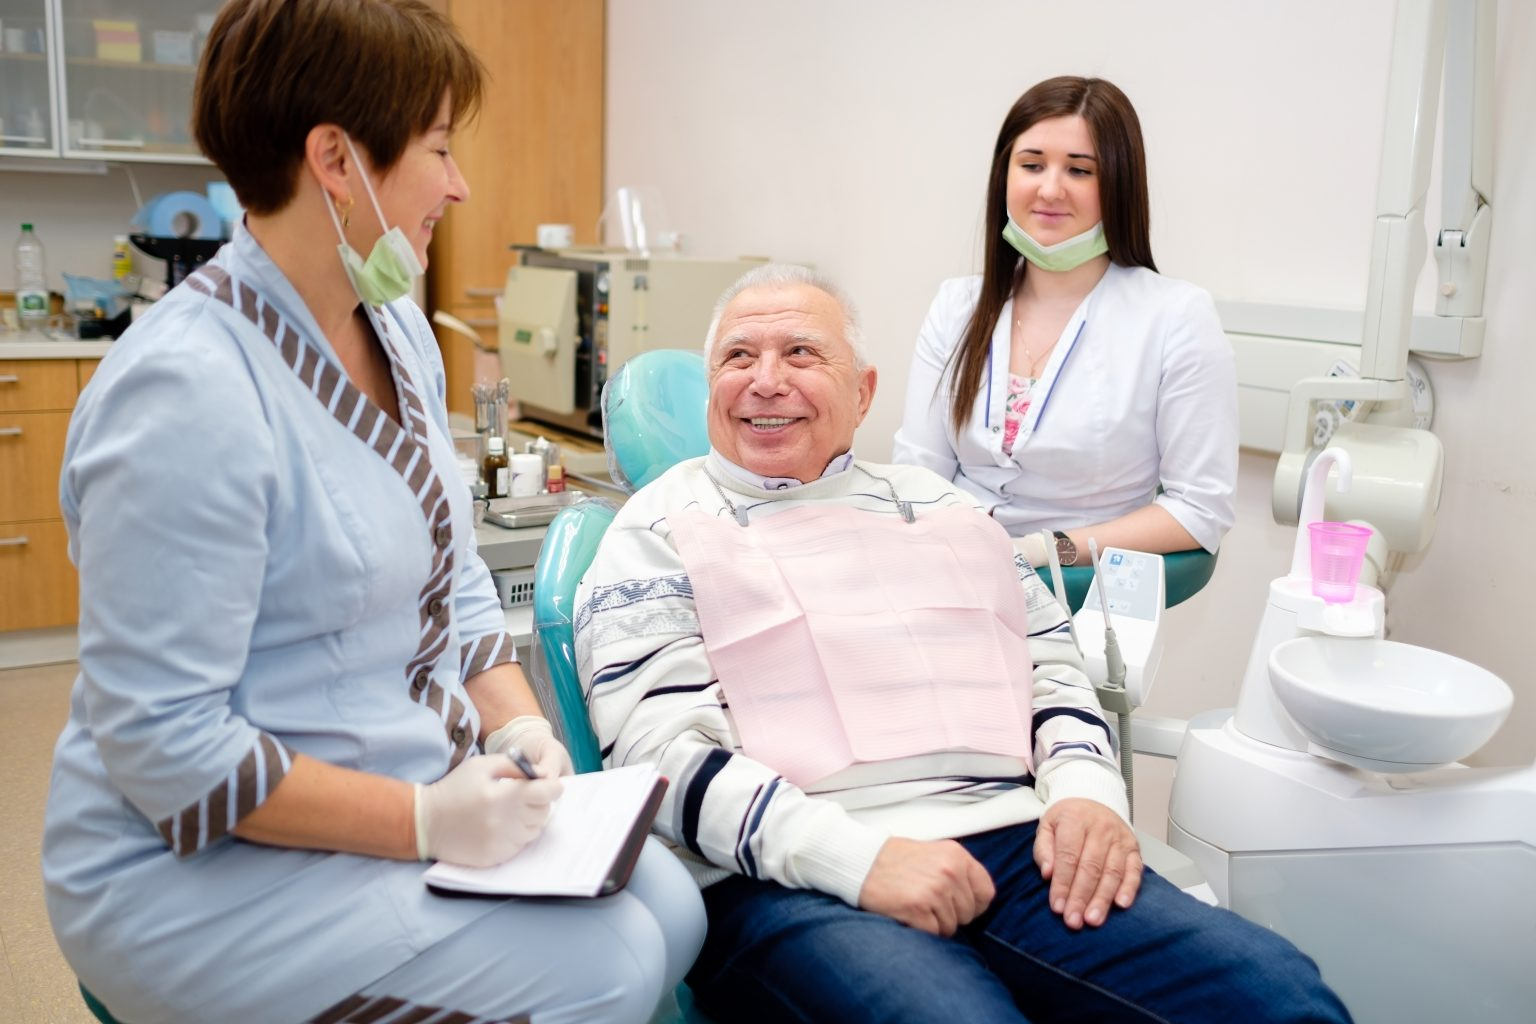 Portrait Of Senior Man, Doctor And Nurse On The First Dental Visit At Dental Office. Old Senior Patient 70 Years Old. Dentistry, Medicine And Health Care Concept.group Of People In Dental Clinic